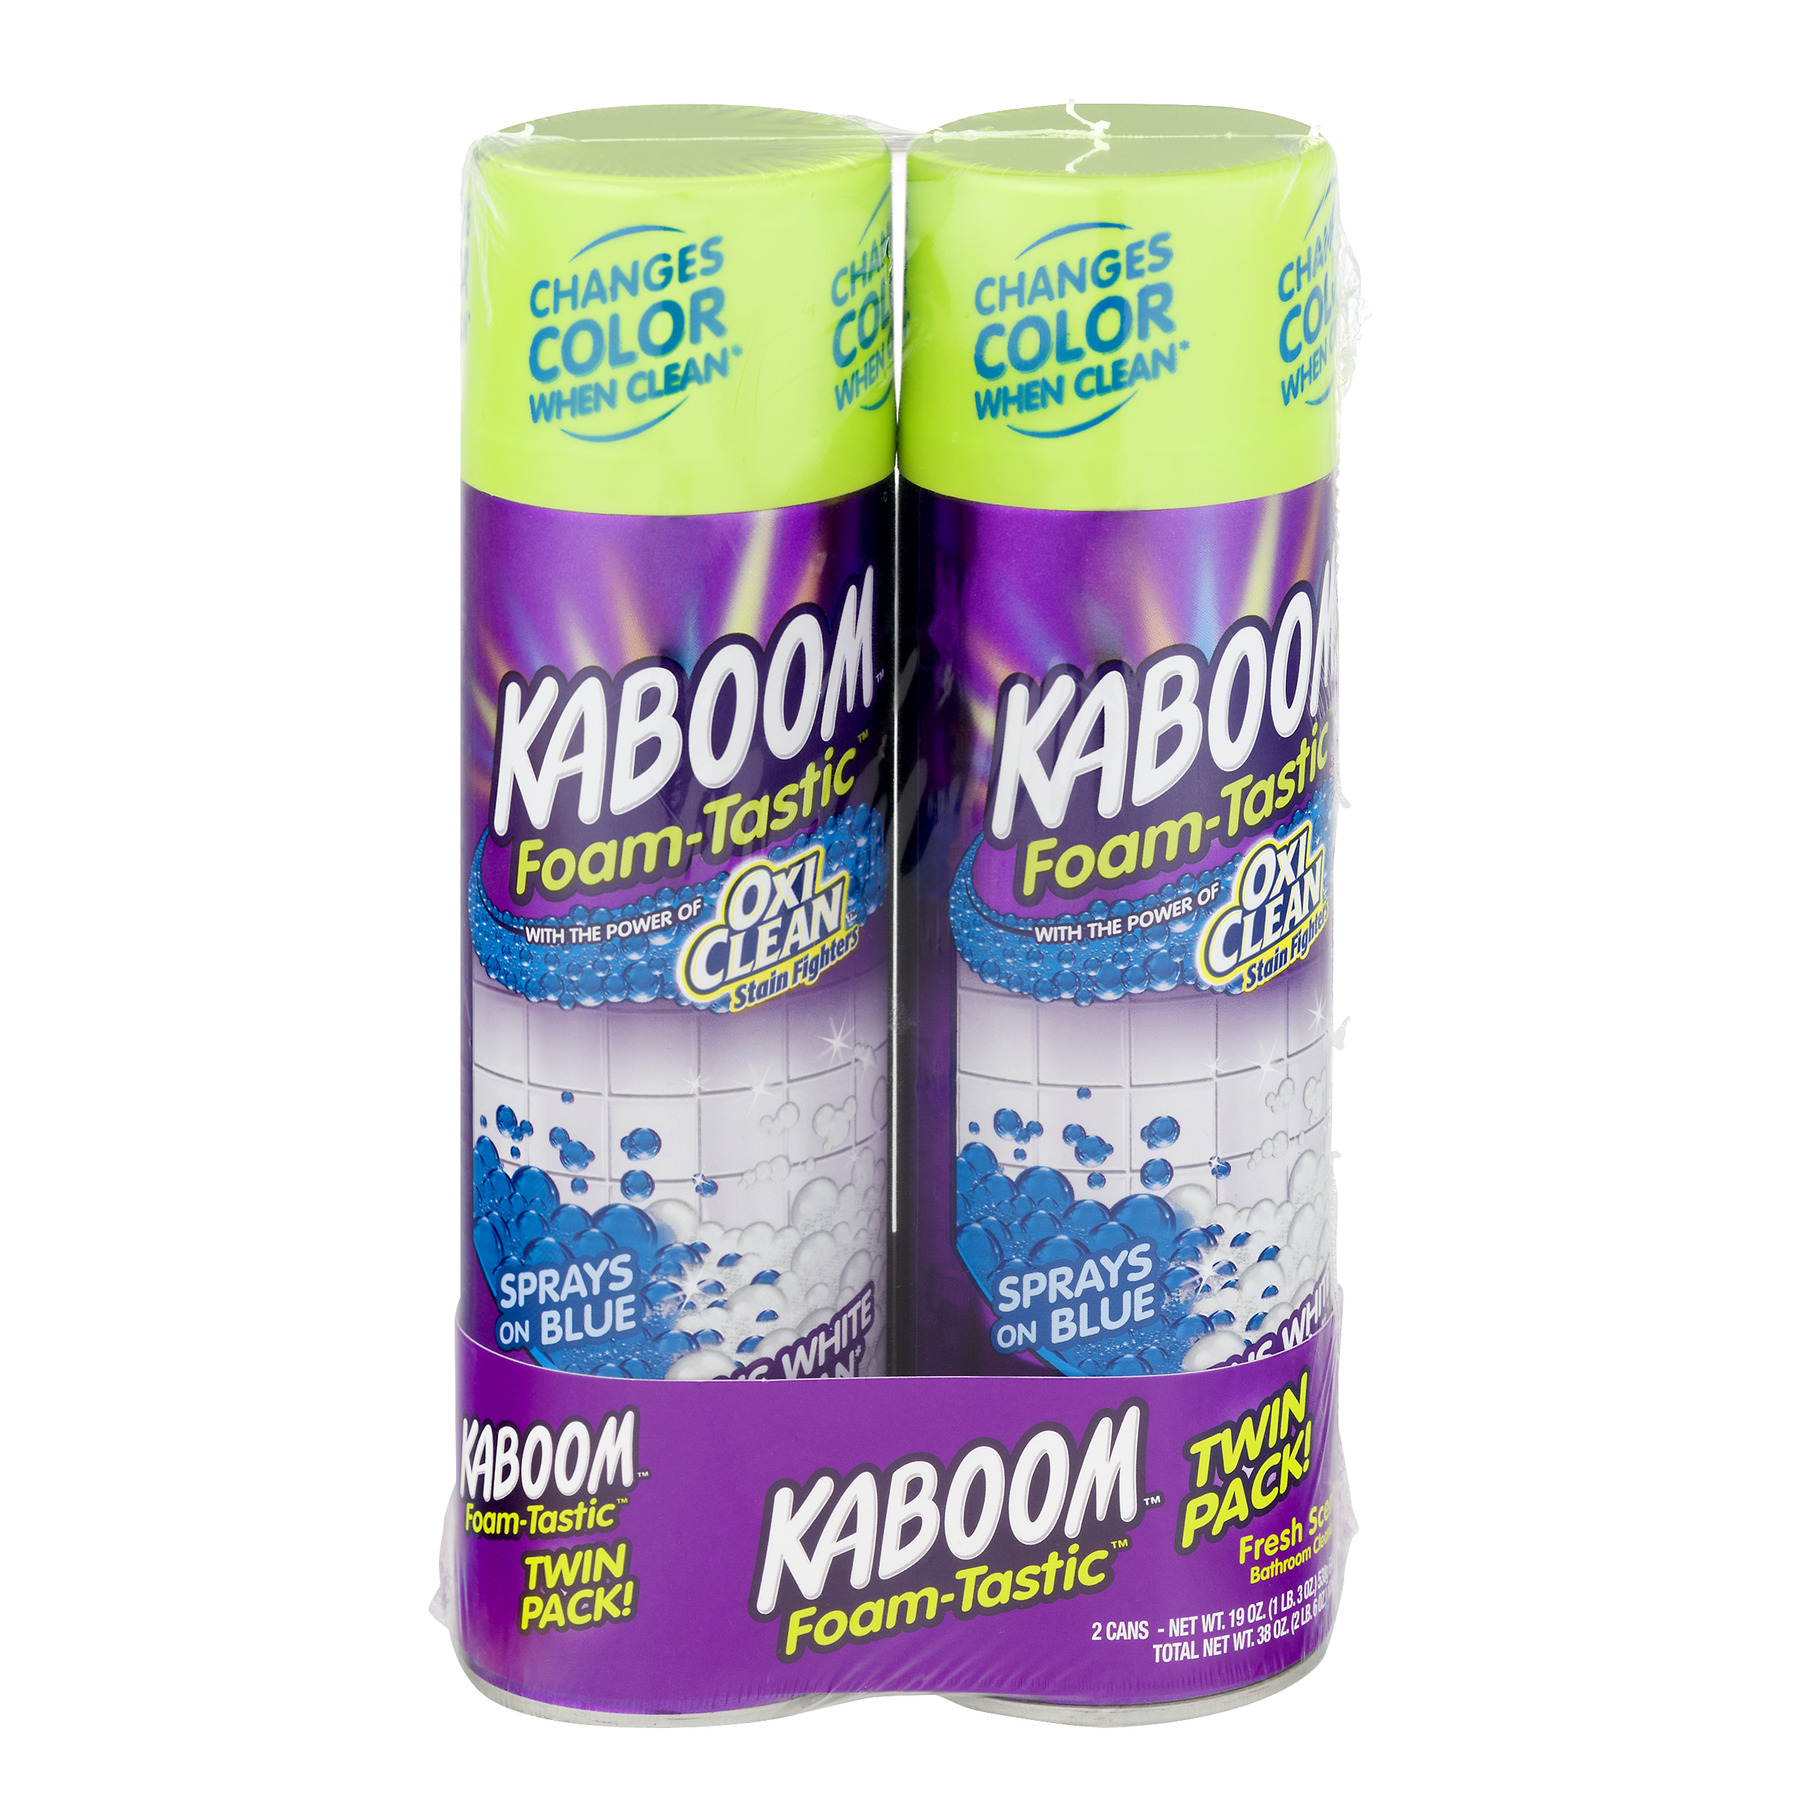 Kaboom Foamtastic Bathroom Cleaner, 19.0 OZ